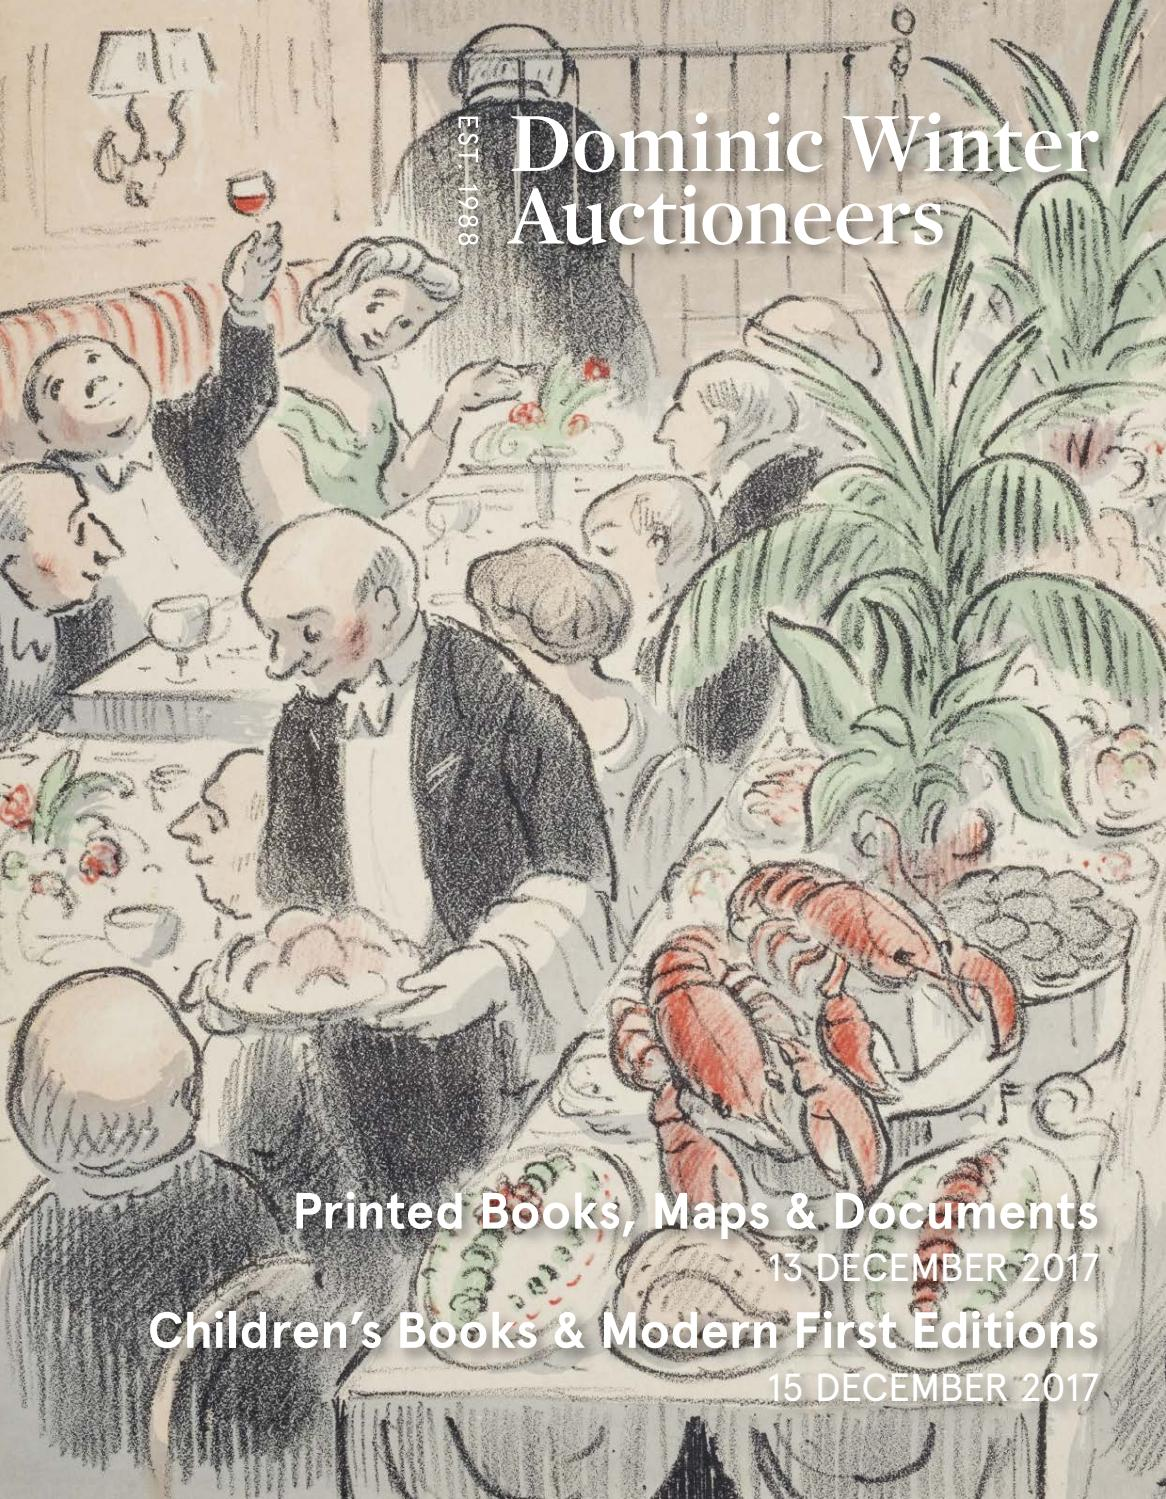 classic fit 64c0d 93314 Dominic Winter Auctioneers by Jamm Design Ltd - issuu